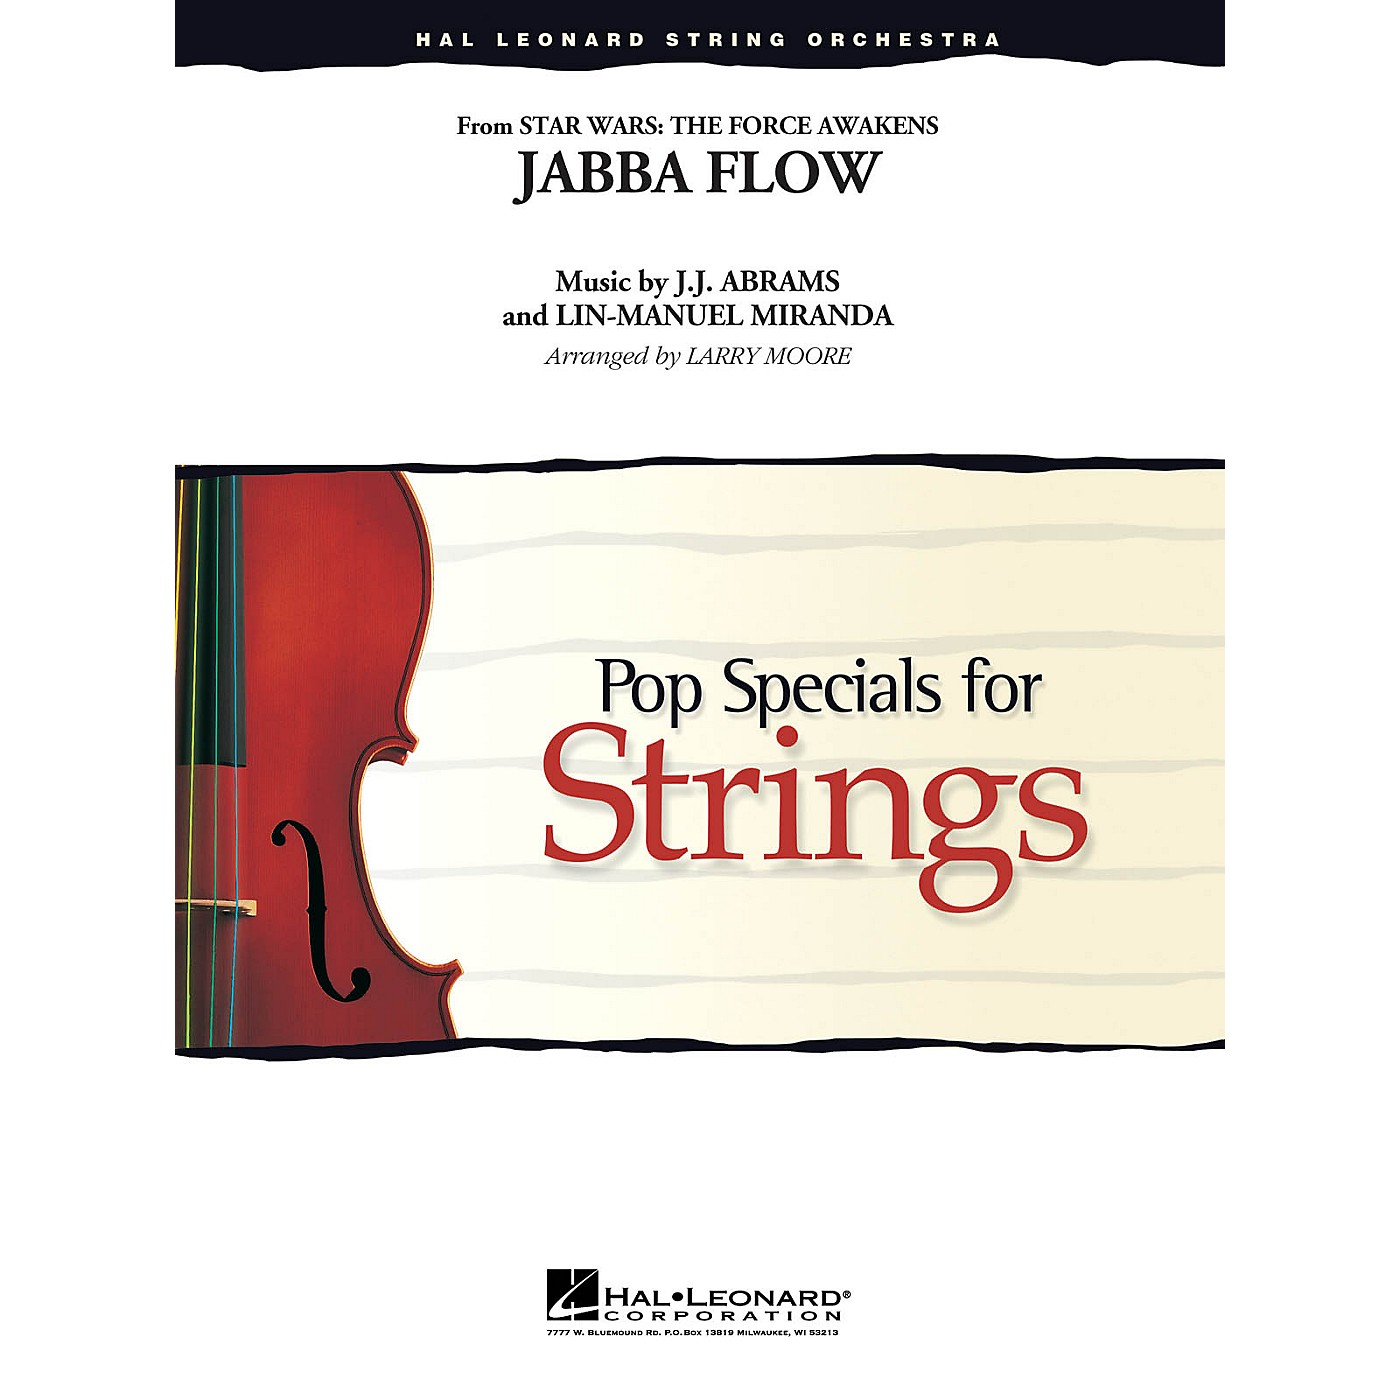 Hal Leonard Jabba Flow Easy Pop Specials For Strings Series Softcover Arranged by Larry Moore thumbnail